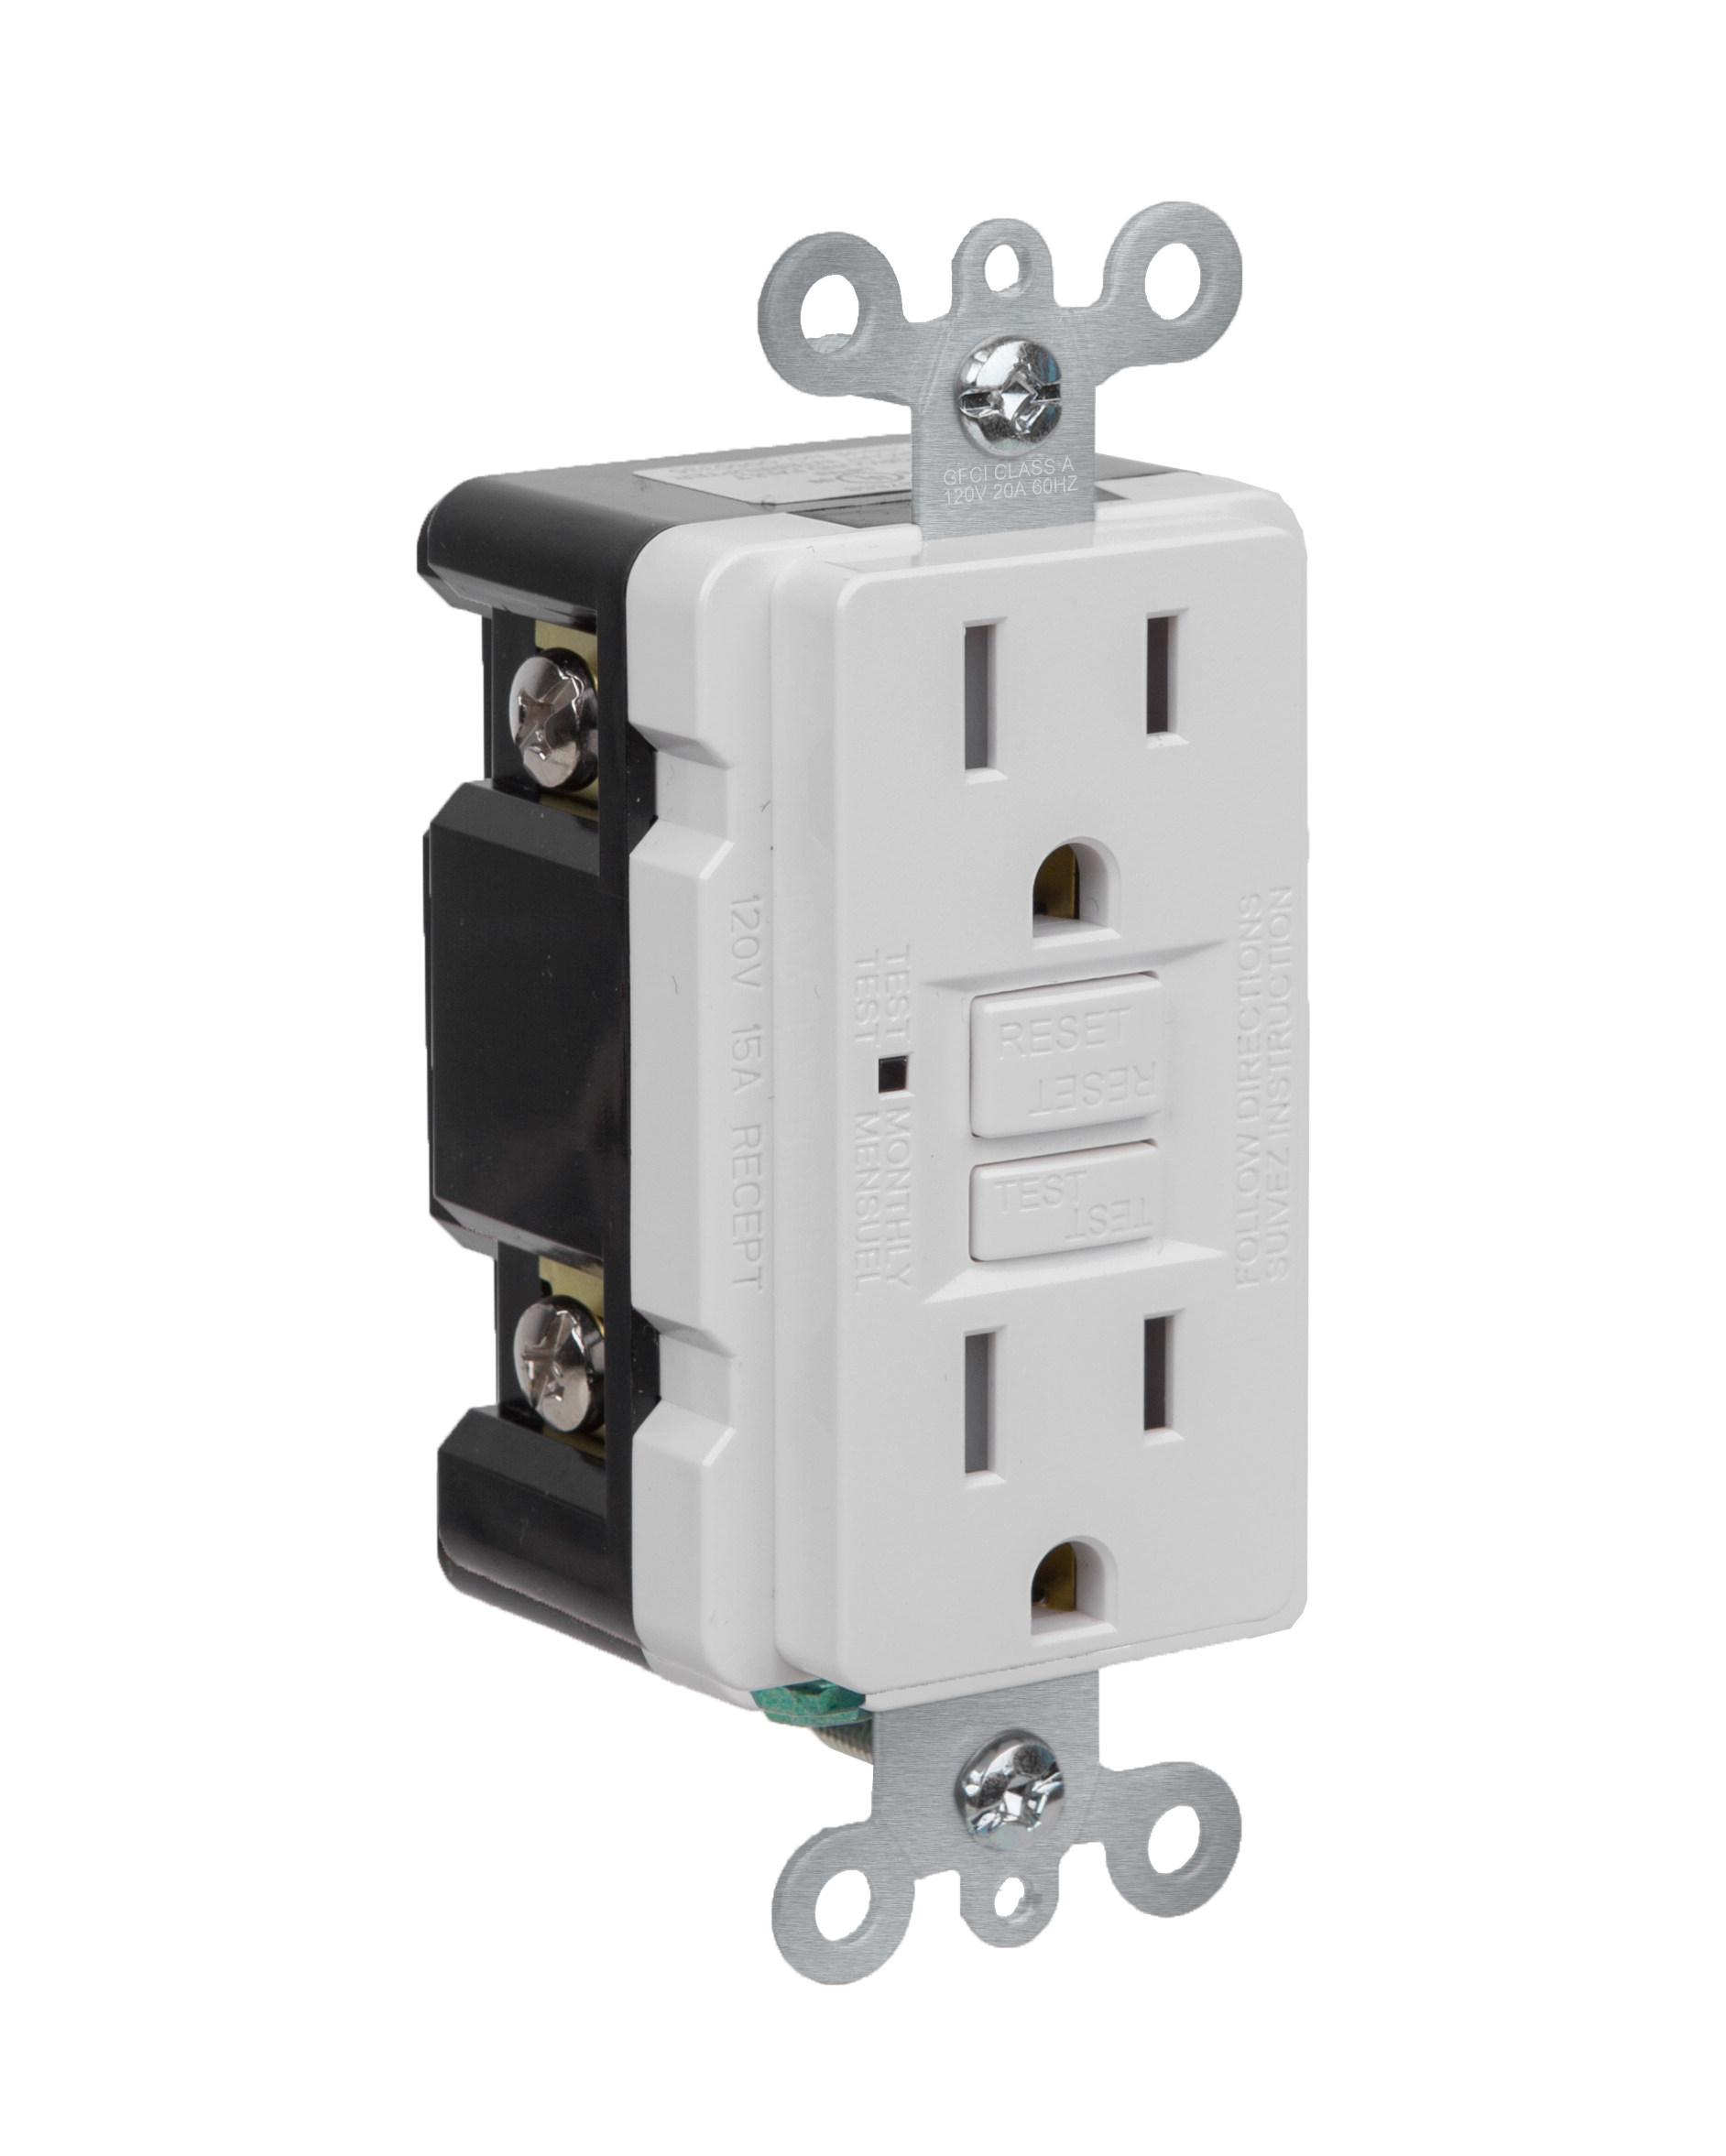 Product - Self-test GFCI receptacle 15A 125V with Tamper-resistant ...